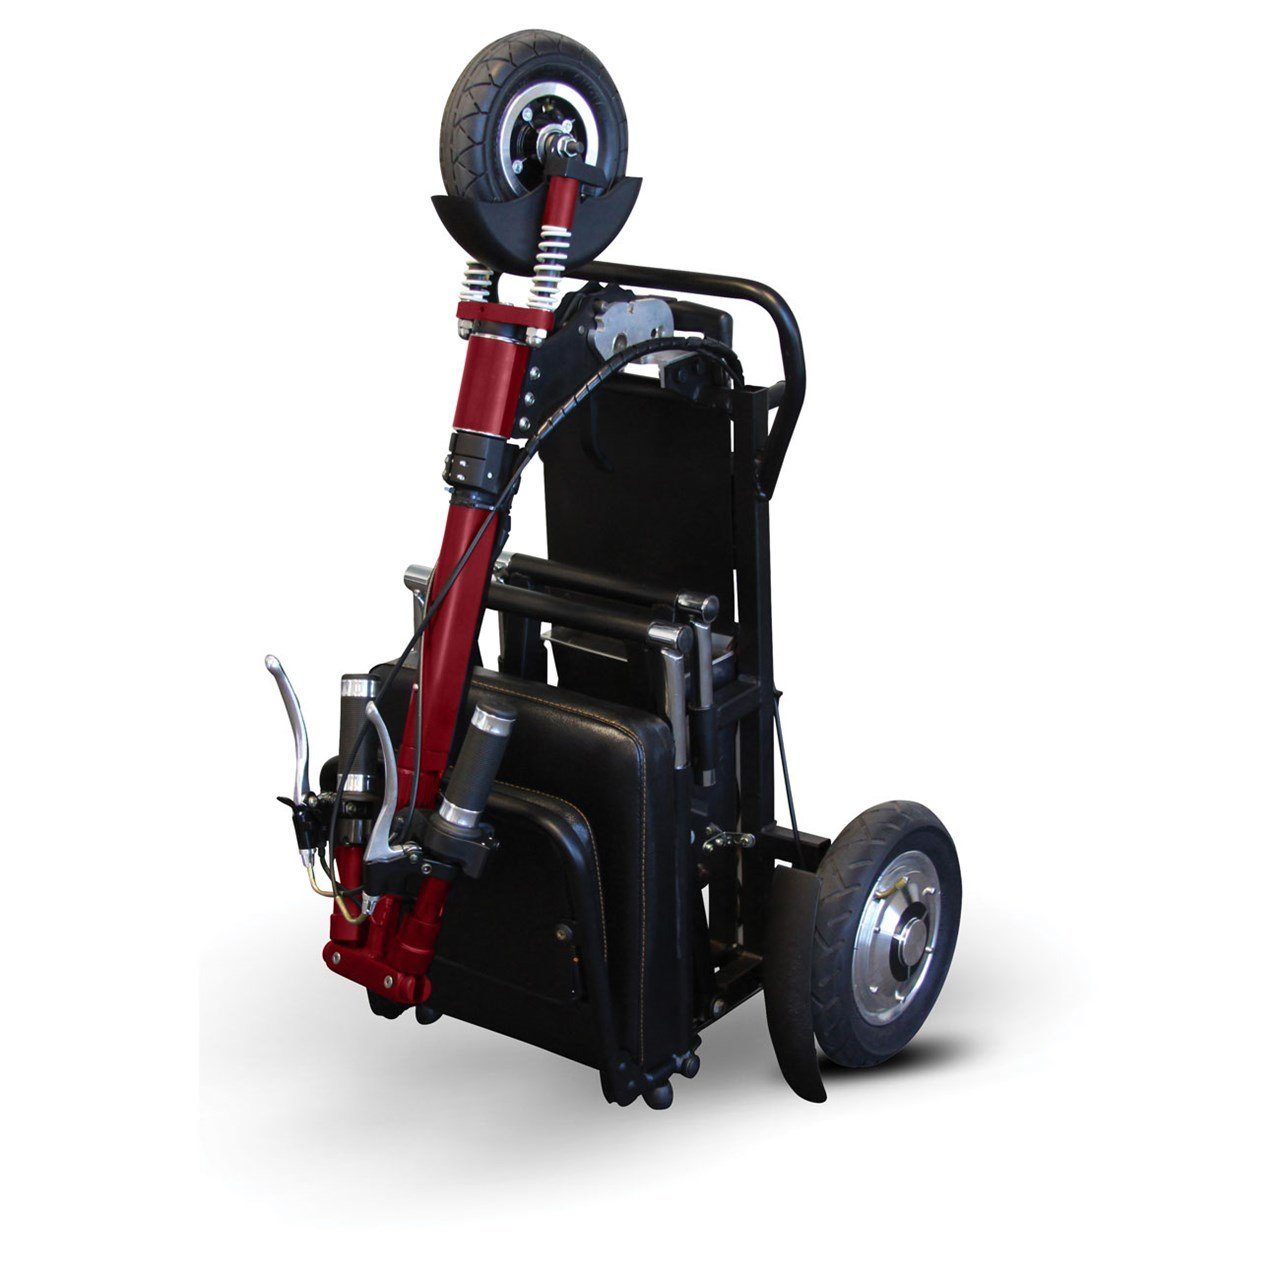 EWheels Speedy Folding Portable Scooter EW-01